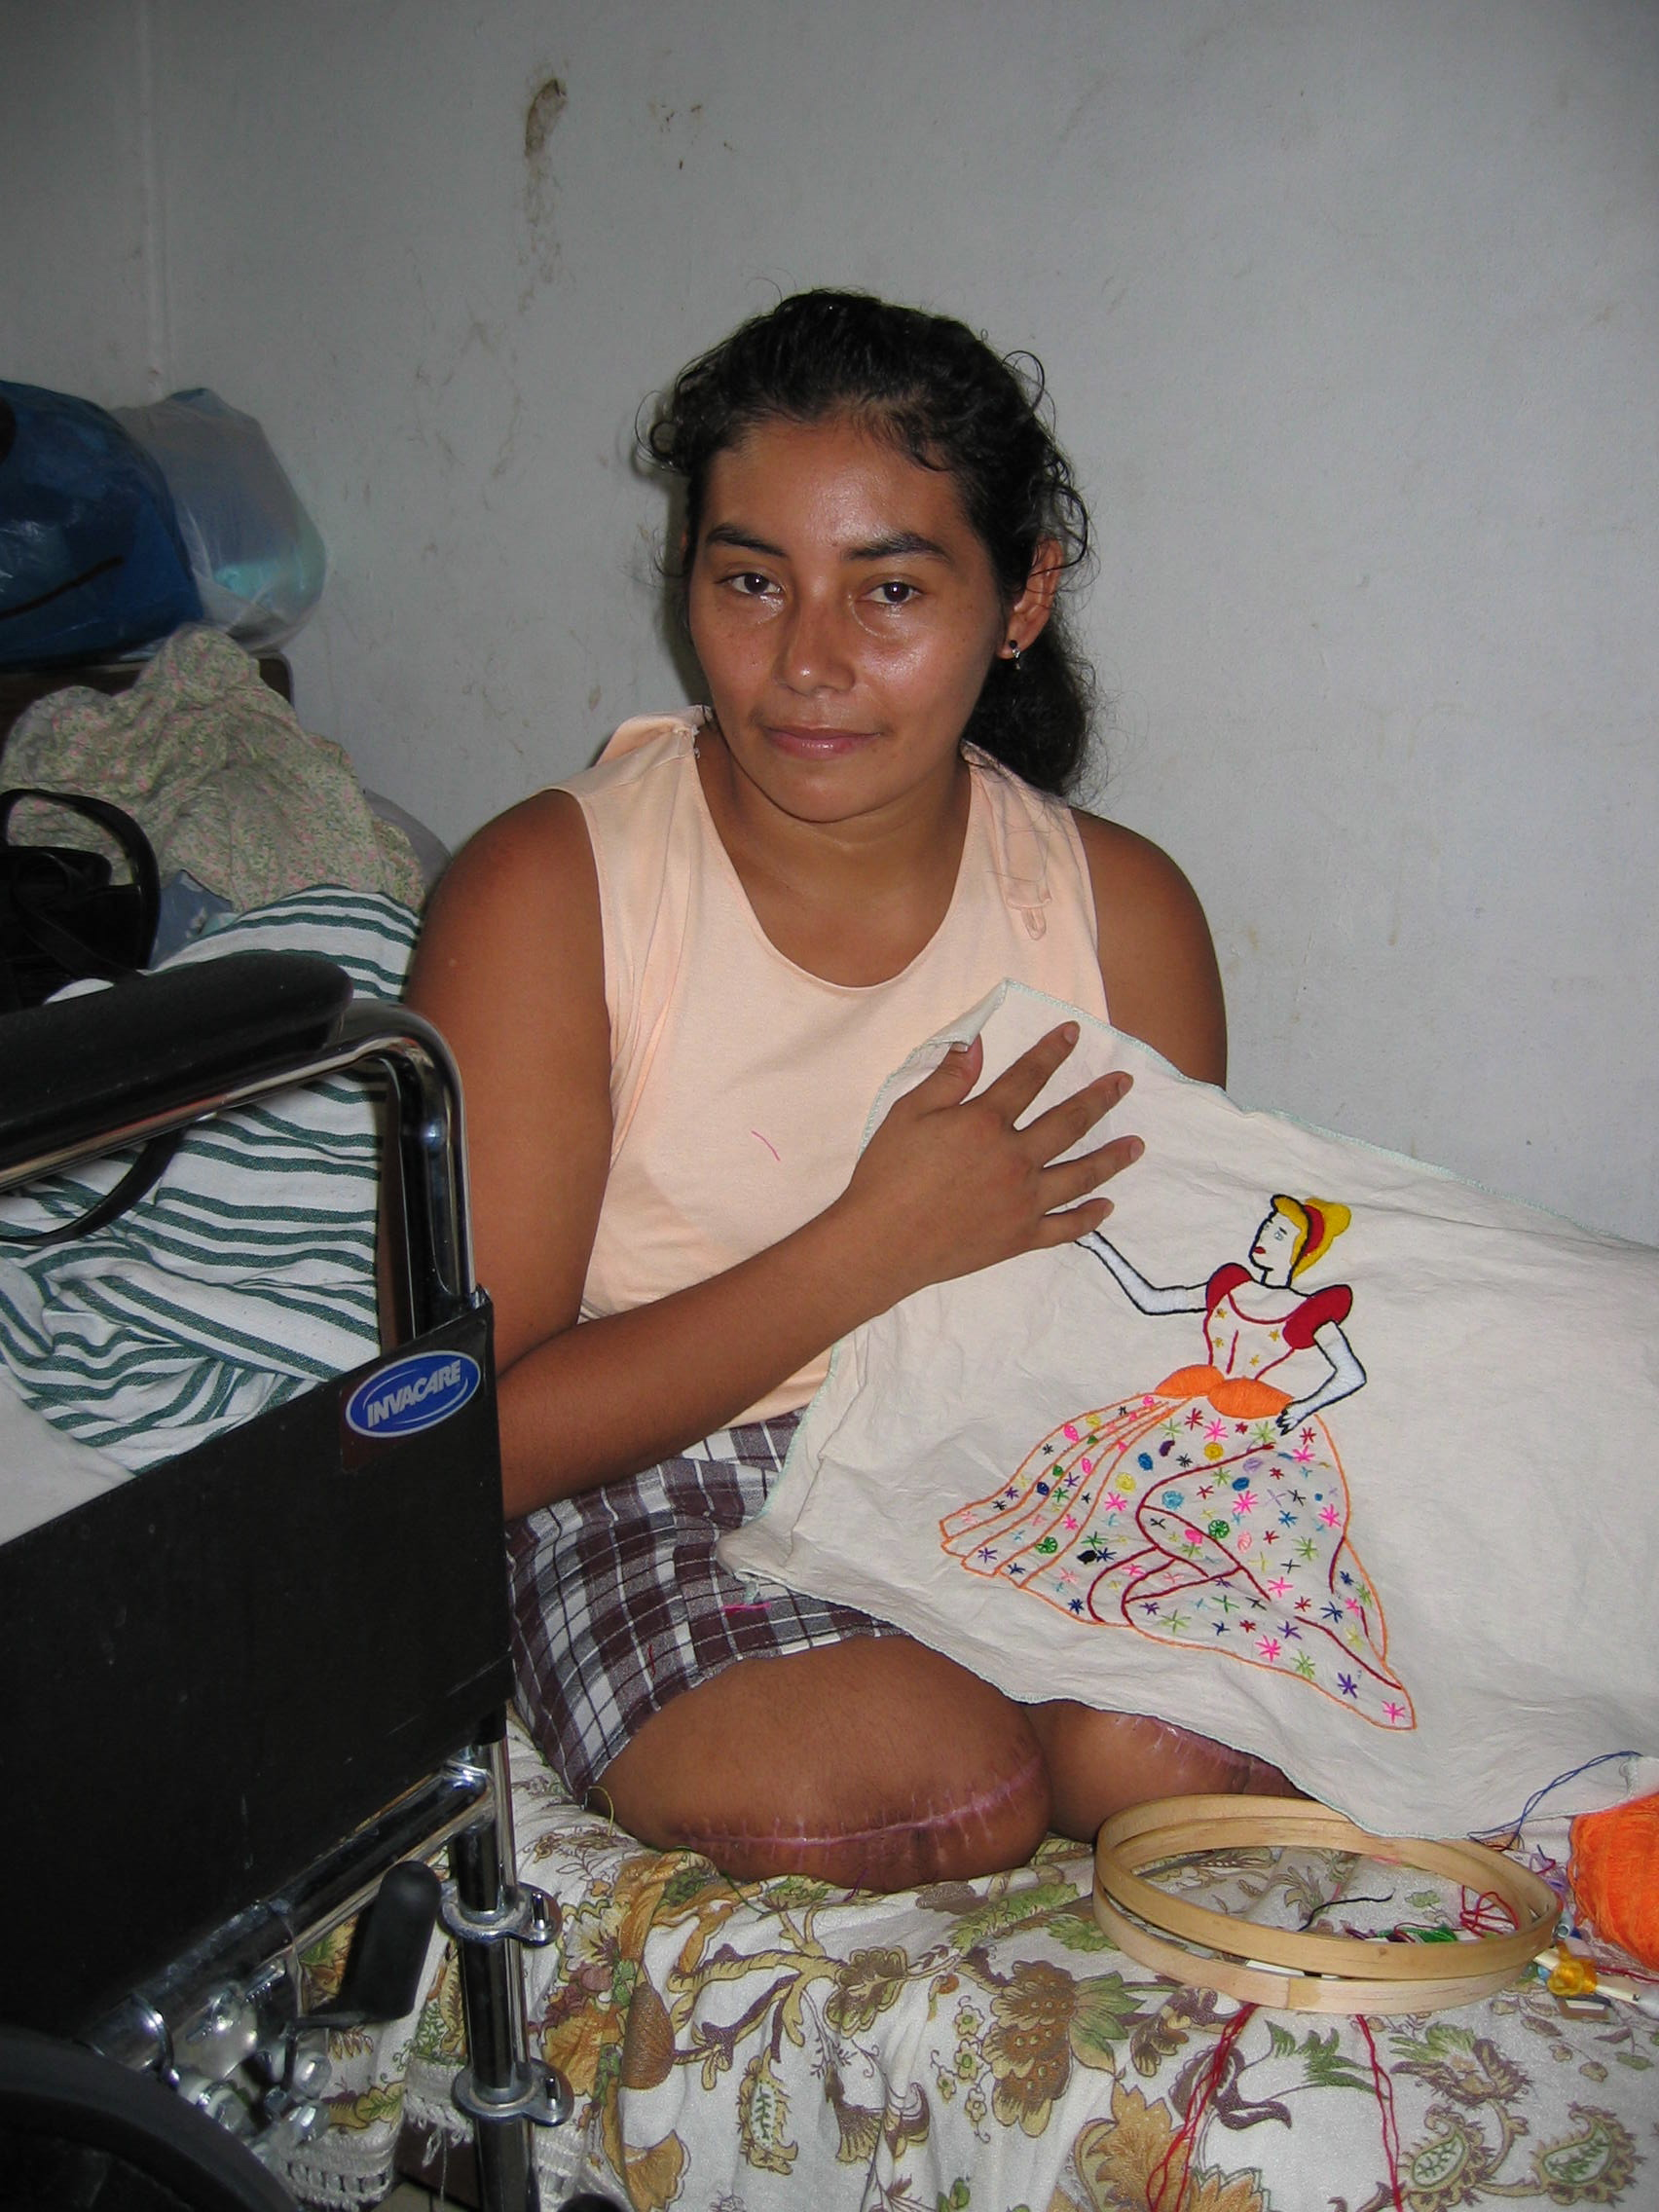 Leti Isabela Mejía Yanes, a single mother of three children, lost both legs trying to board a Mexican freight train. She was trying to reach the United States to send money to Honduras so her children could eat more than once a day.